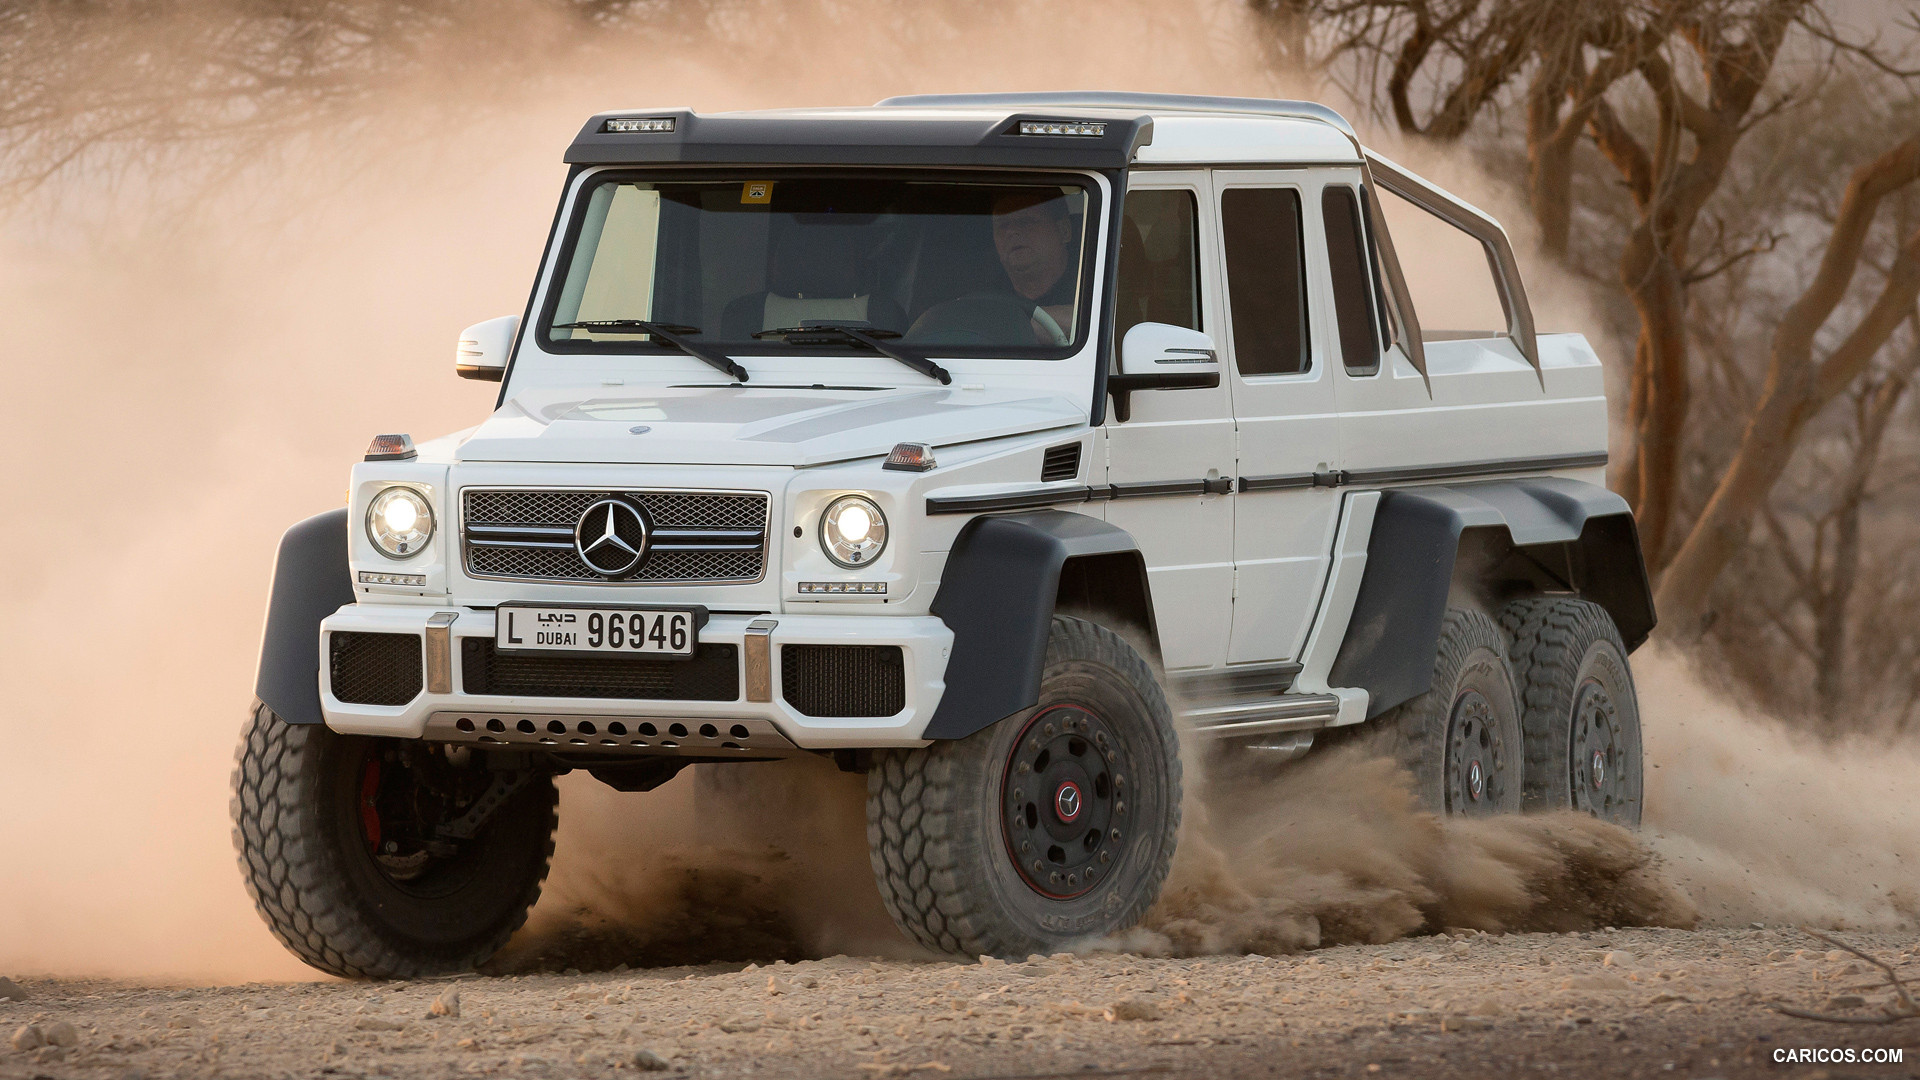 Mercedes Benz G63 Amg 6x6 Wallpapers Vehicles Hq Mercedes Benz G63 Amg 6x6 Pictures 4k Wallpapers 2019